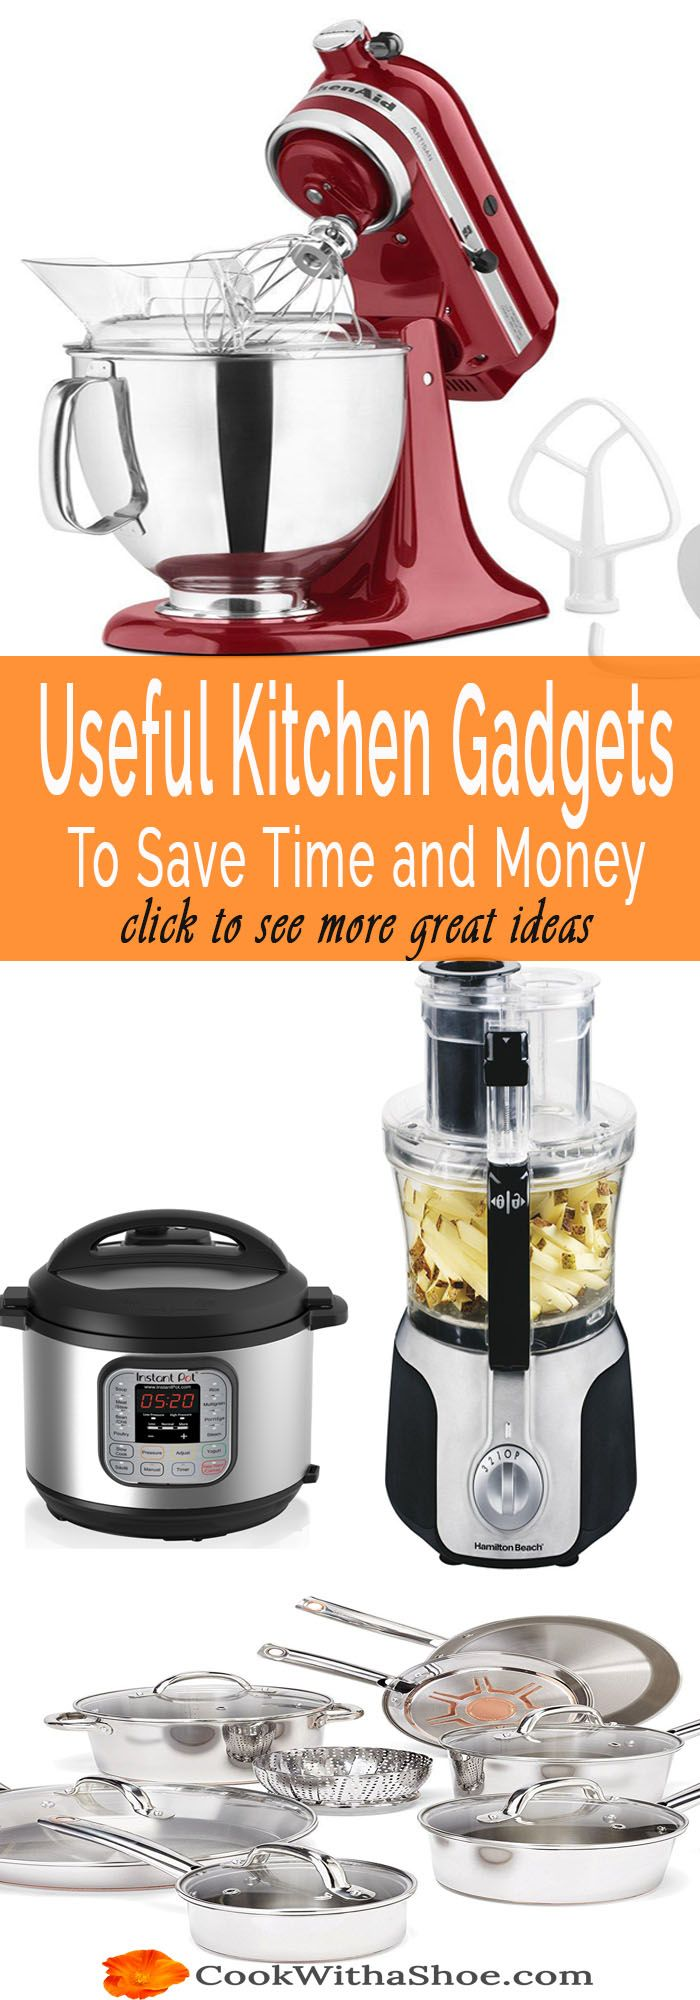 Best Kitchen Appliances For The Home Cook